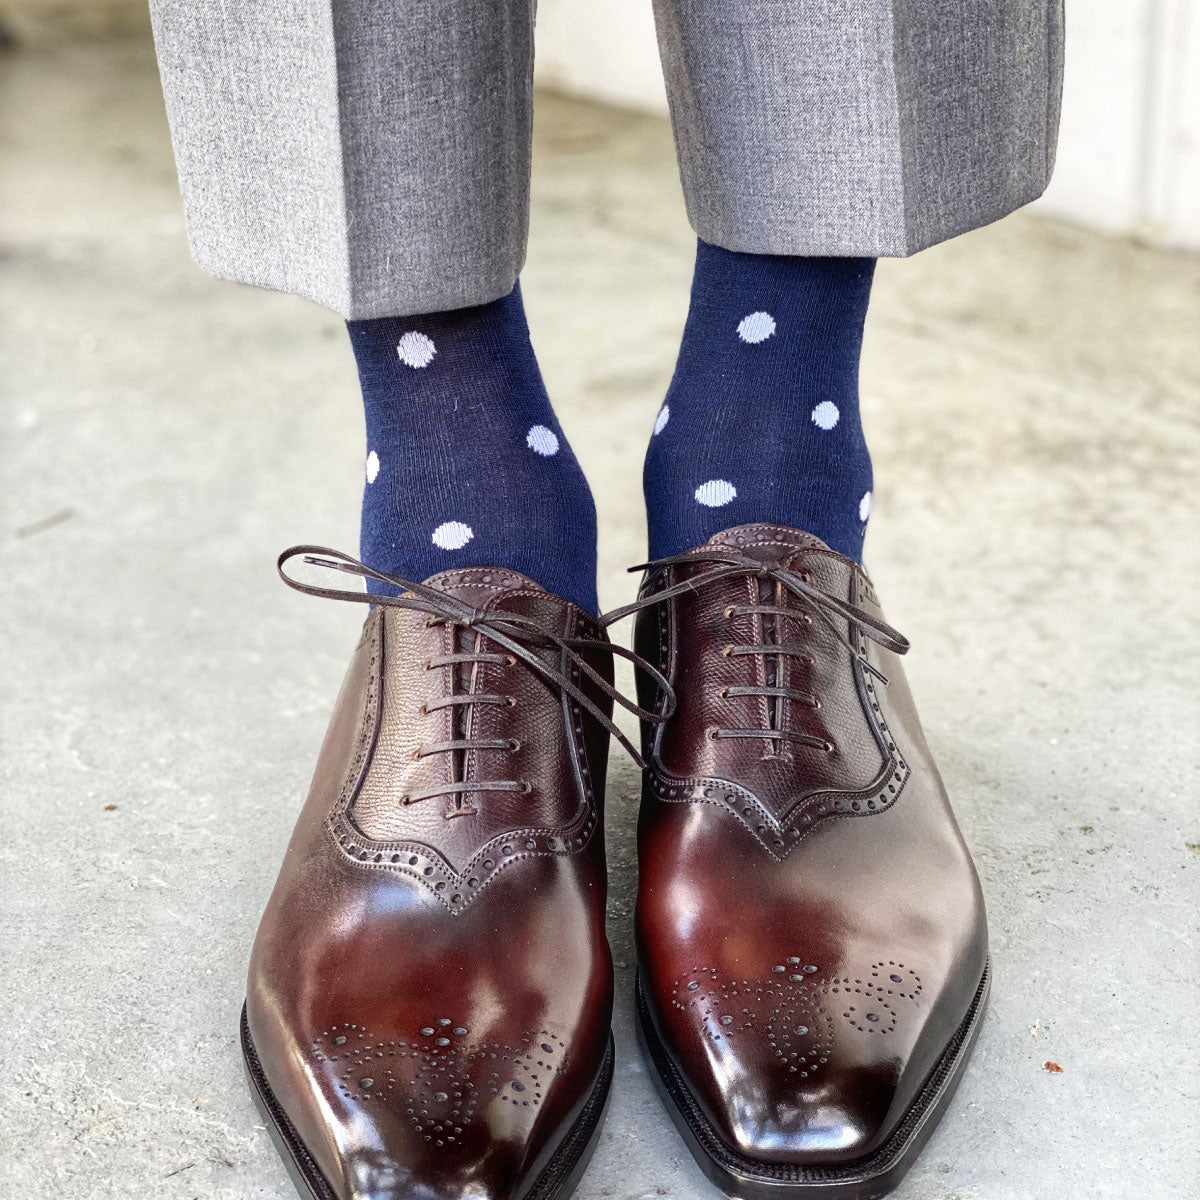 Navy men's dress socks with white polka dots